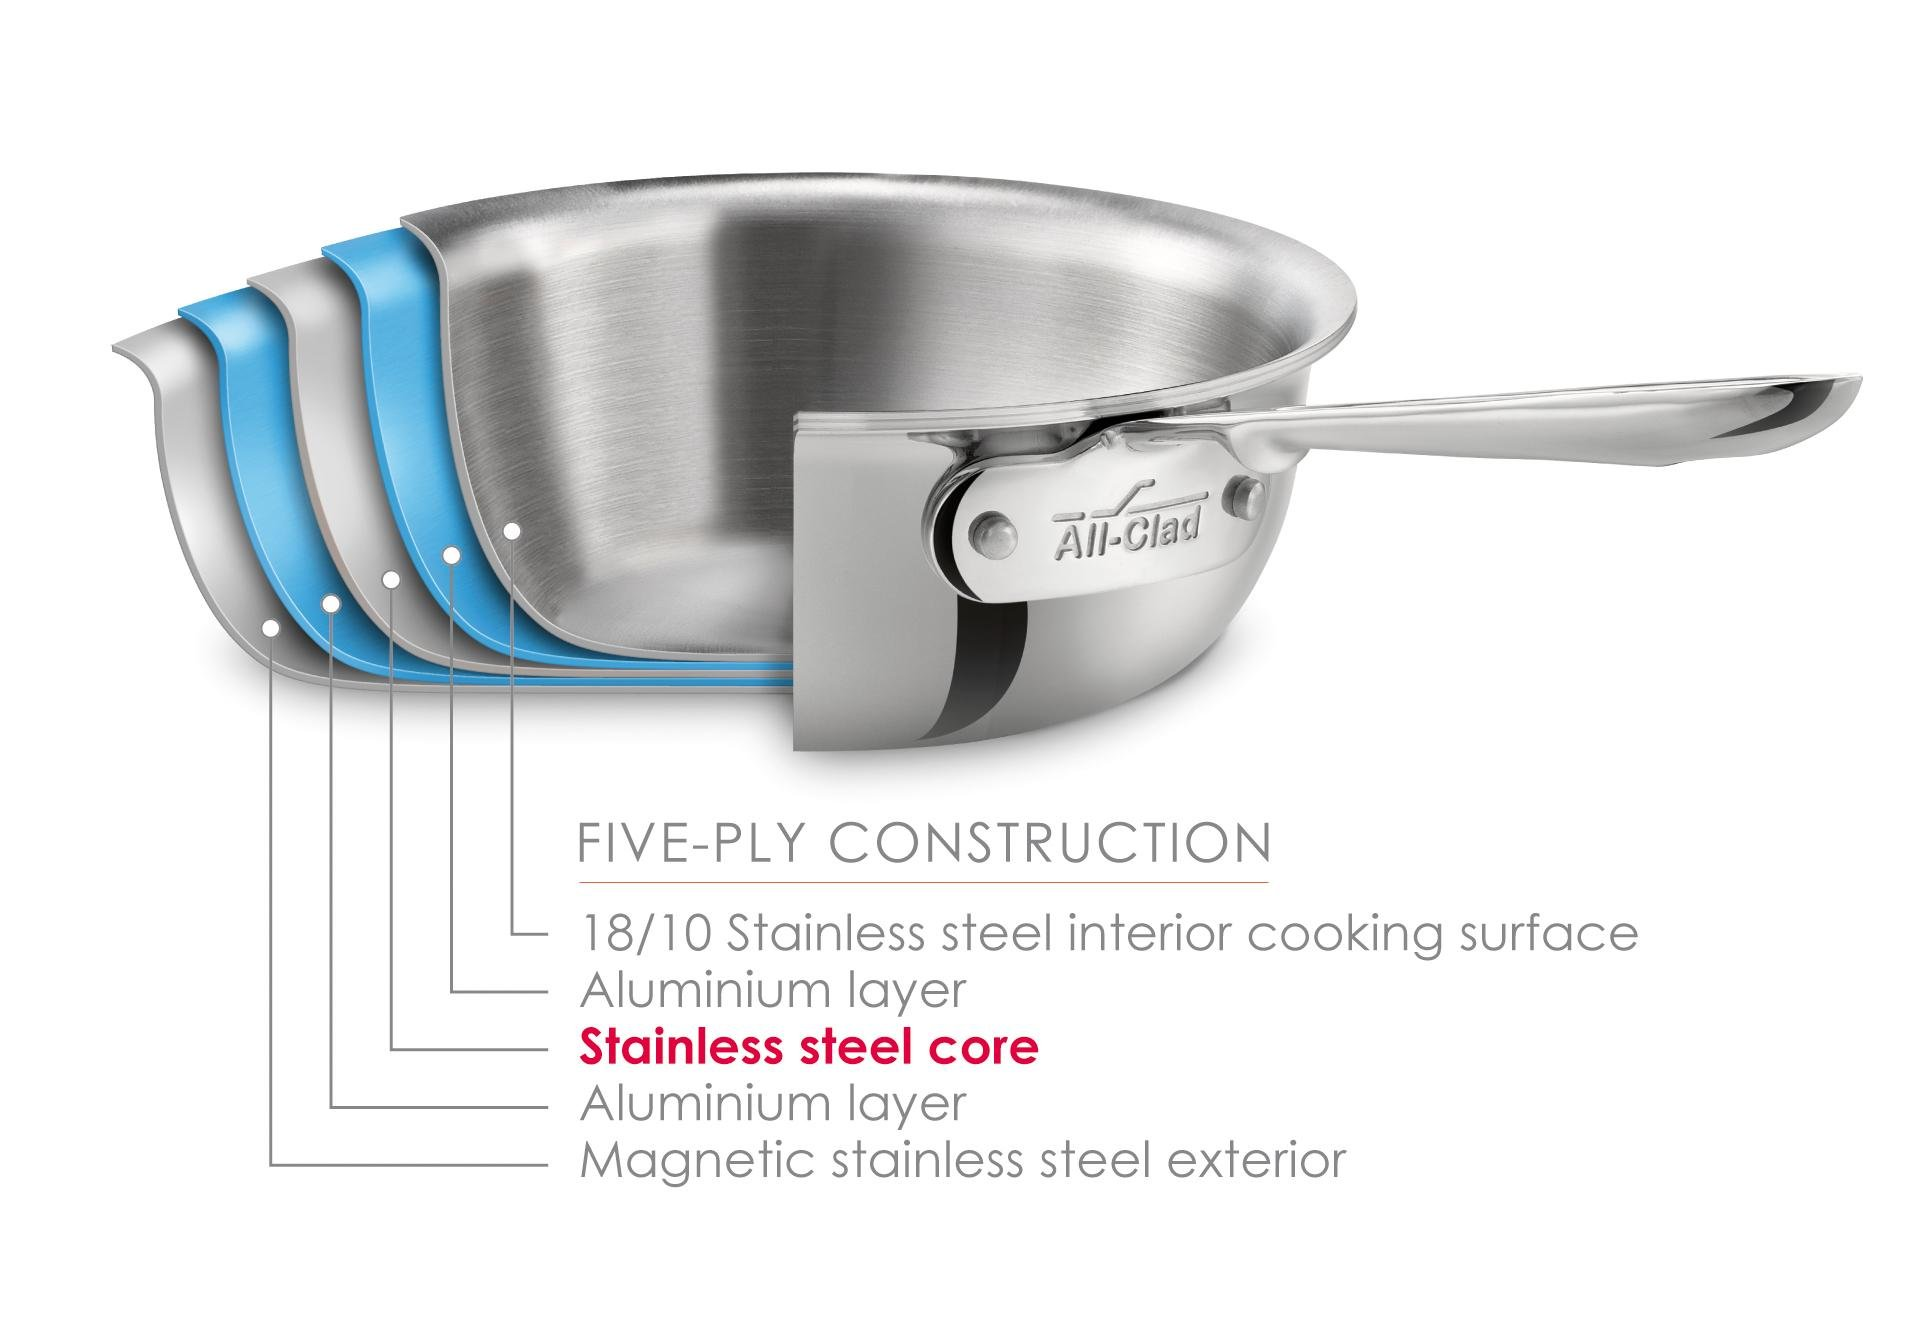 All-Clad BD005714 D5 Brushed 18/10 Stainless Steel 5-Ply Bonded Dishwasher Safe Cookware Set, 14-Piece, Silver by All-Clad (Image #8)